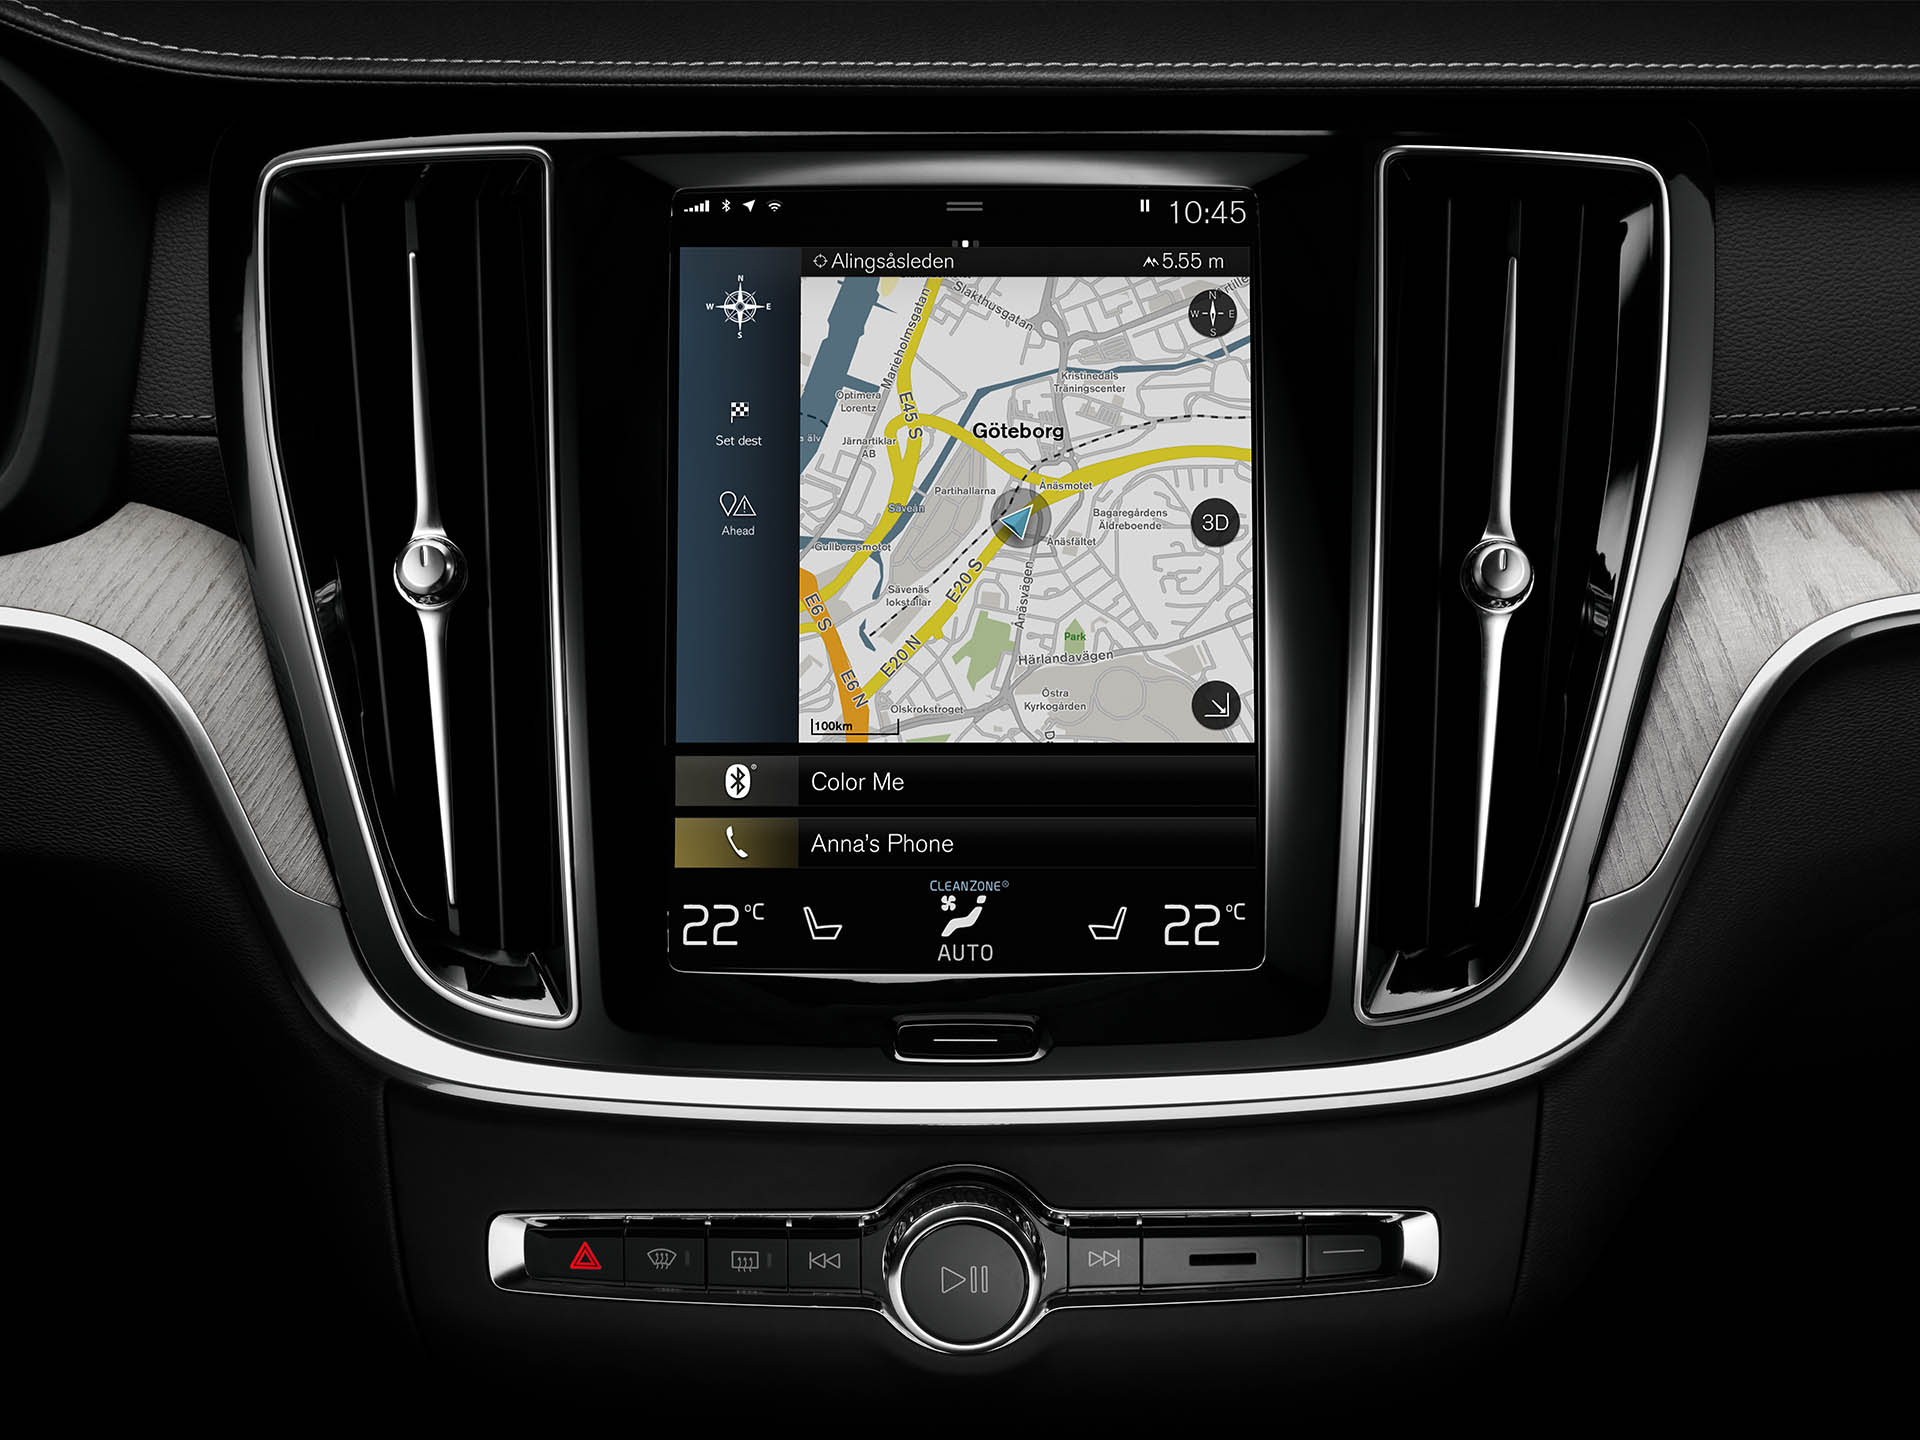 The integrated connectivity system inside a Volvo displays a map of central Gothenburg